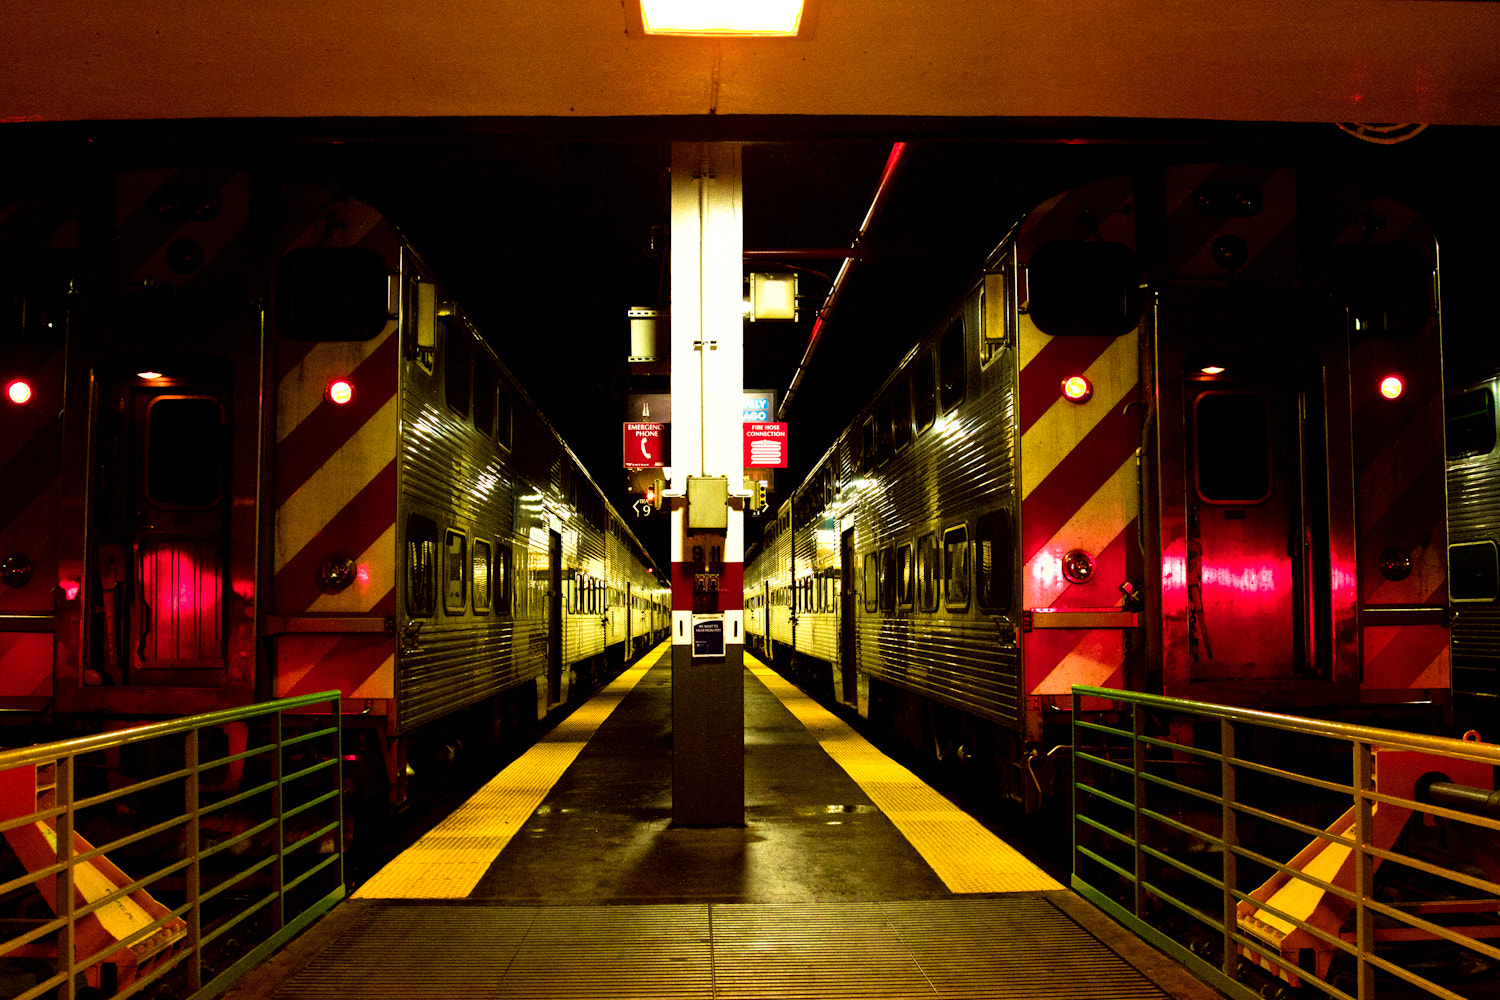 Photograph Train to Chicago by Ewa Rice on 500px